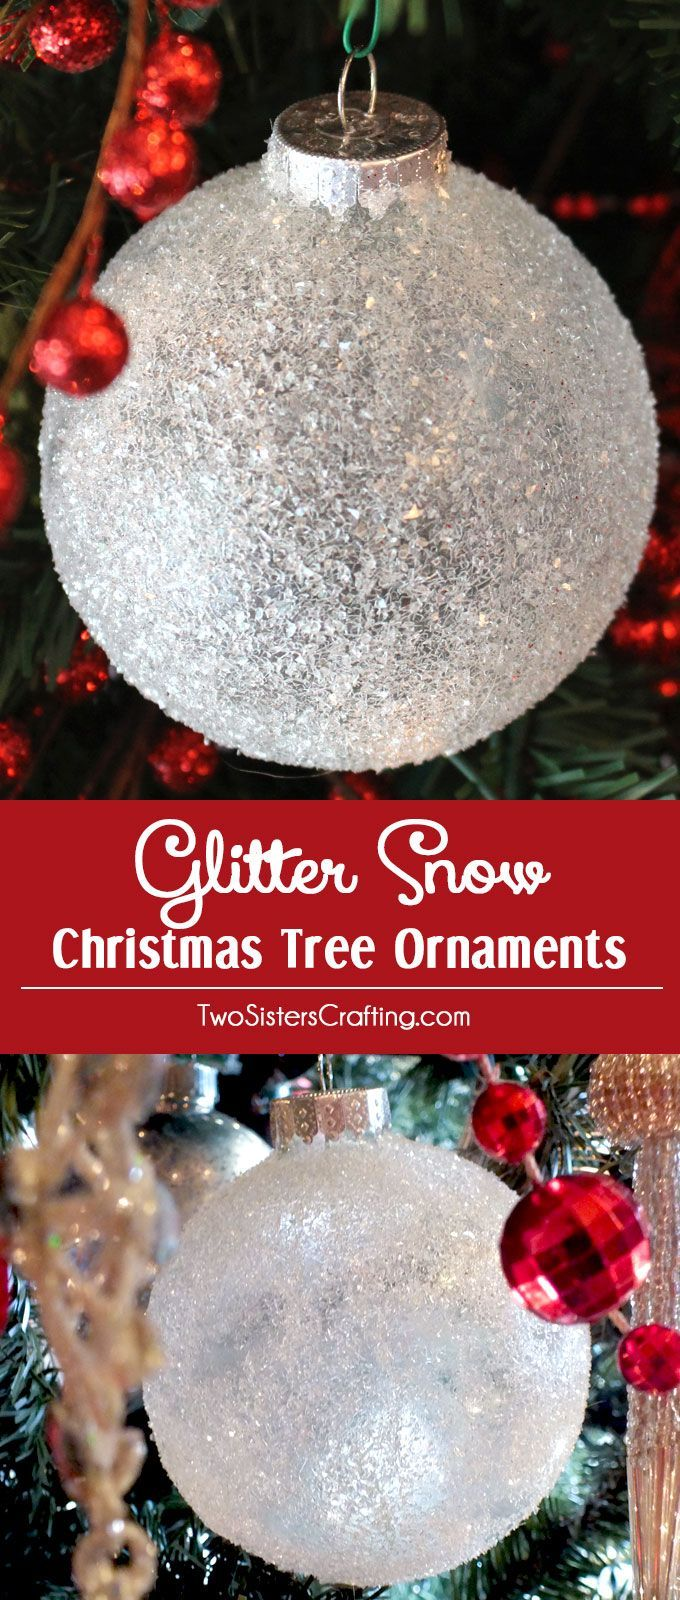 snow christmas tree ornaments are beautiful and easy to make these christmas ornaments will look like they are covered in glistening snow on your christmas